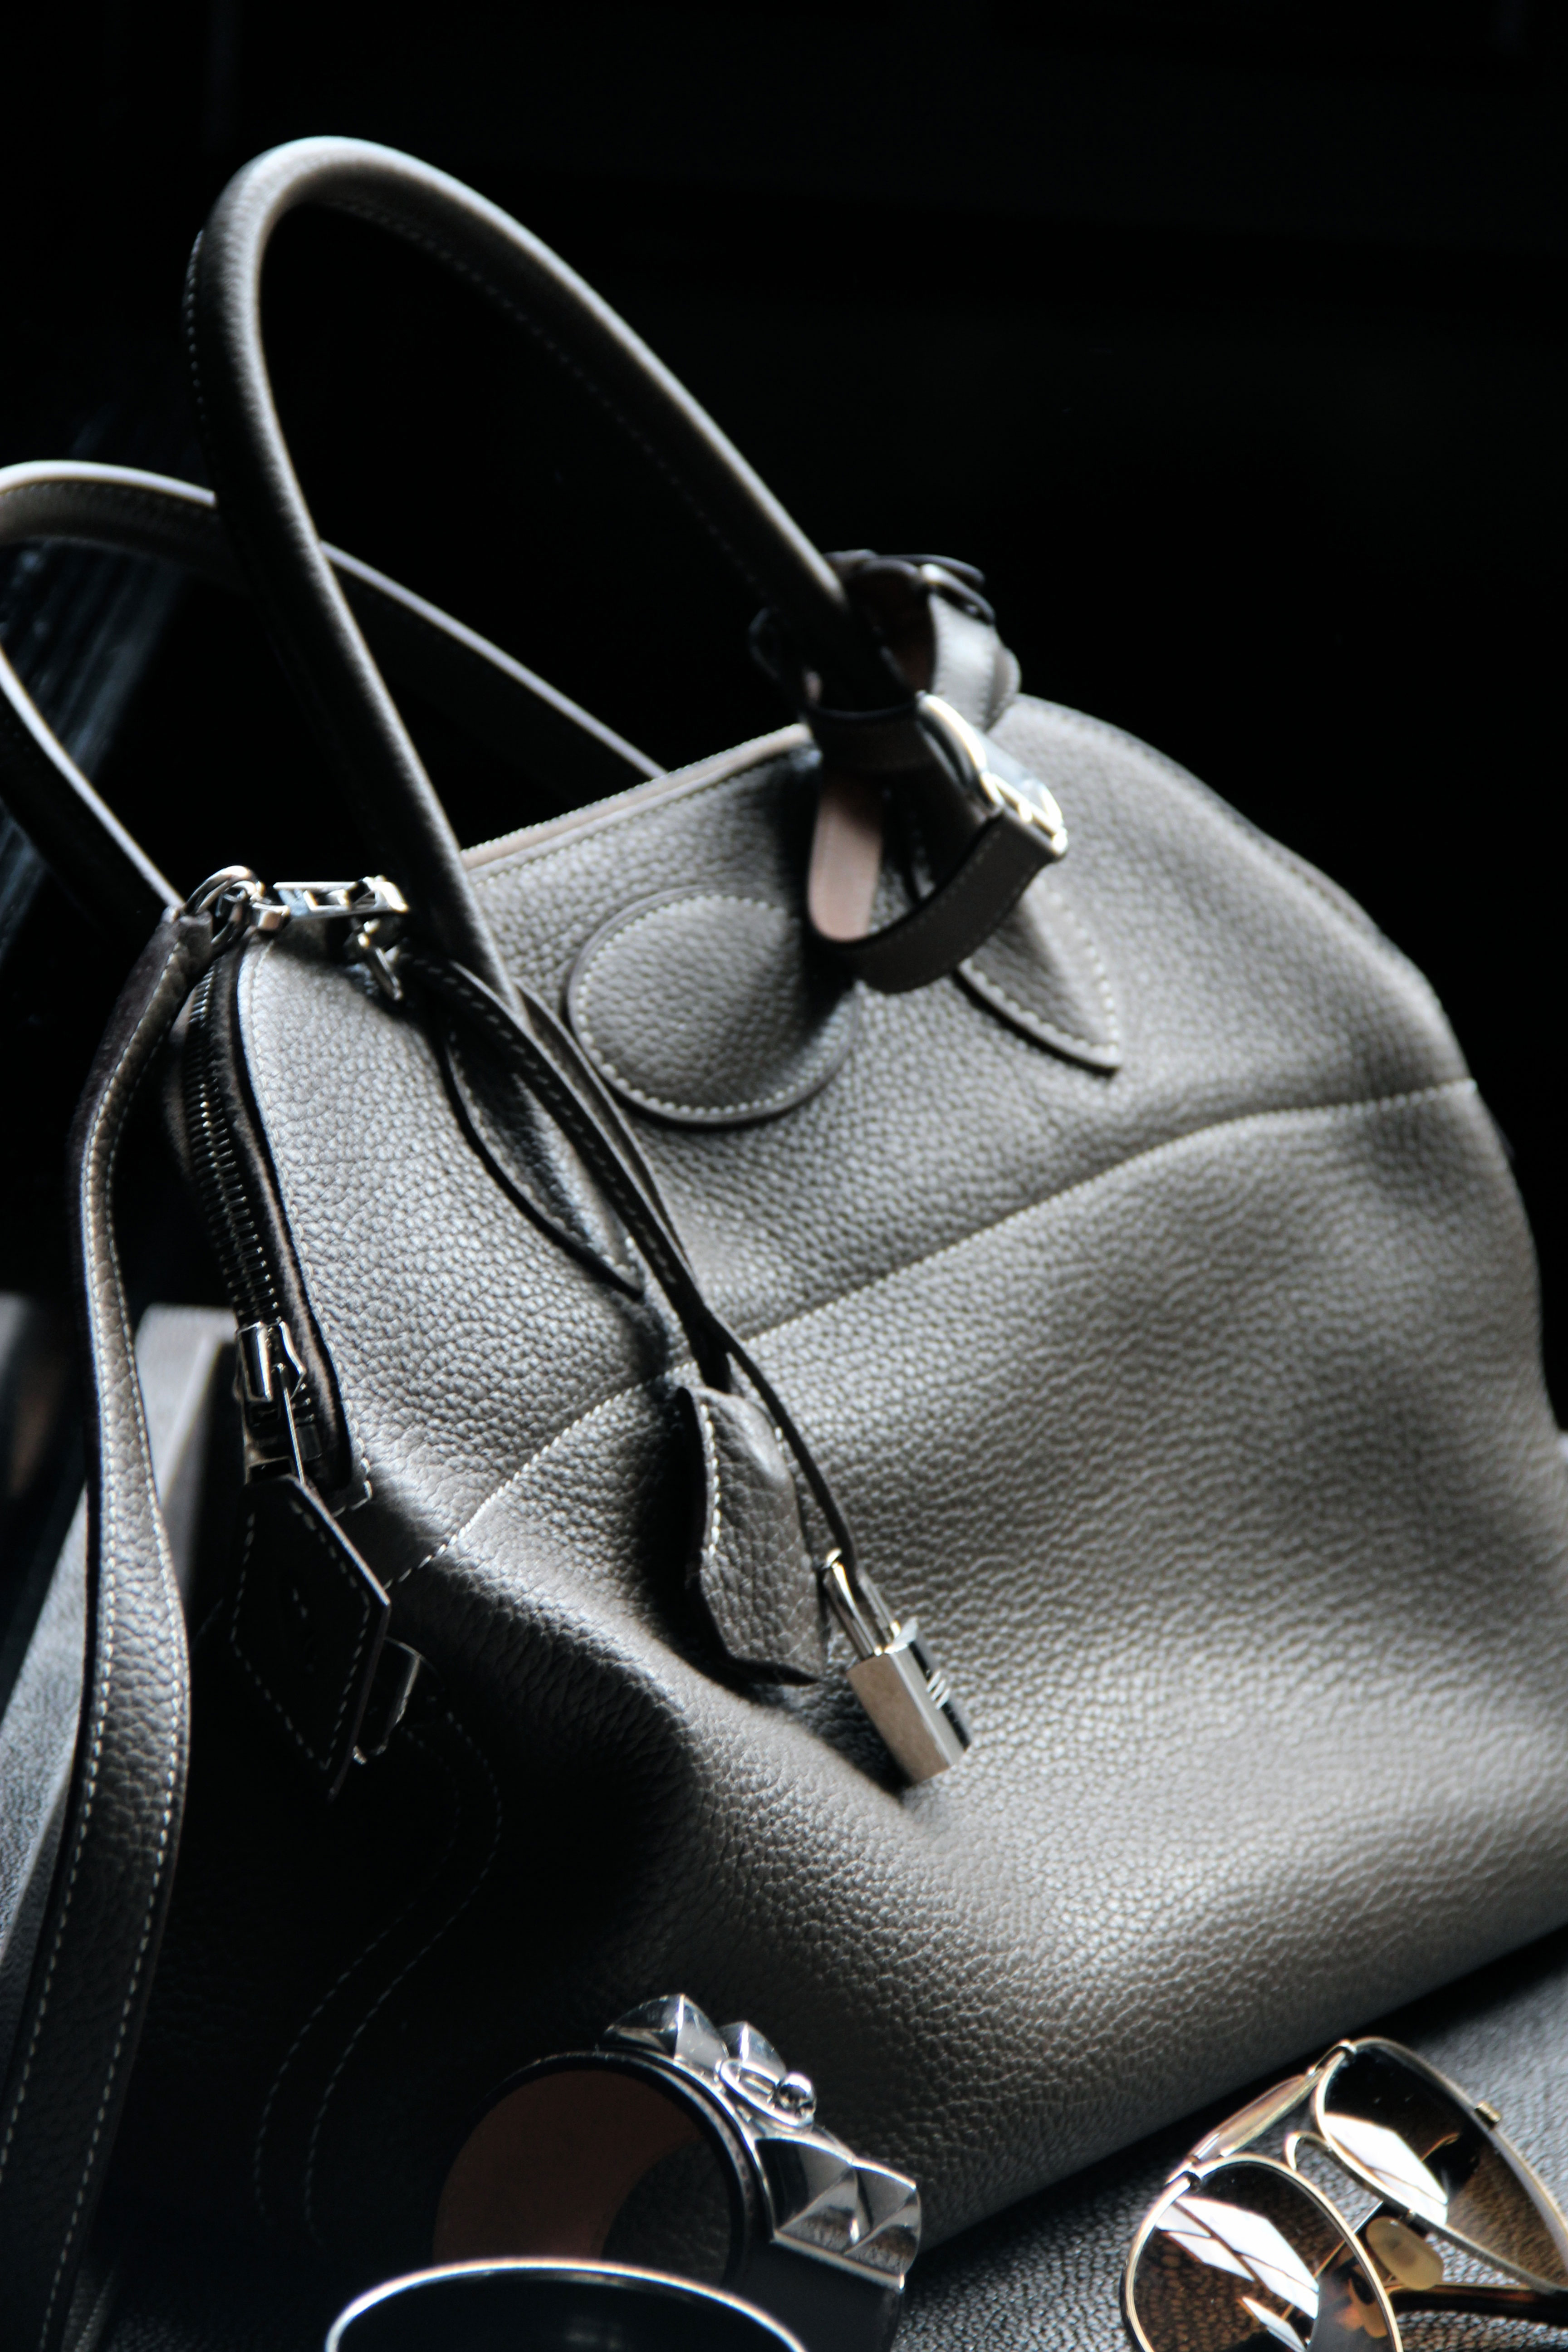 hermes kelly bag replica - Embracing Winter with Trish McEvoy, Hermes \u0026amp; Diptyque | The Lovely ...